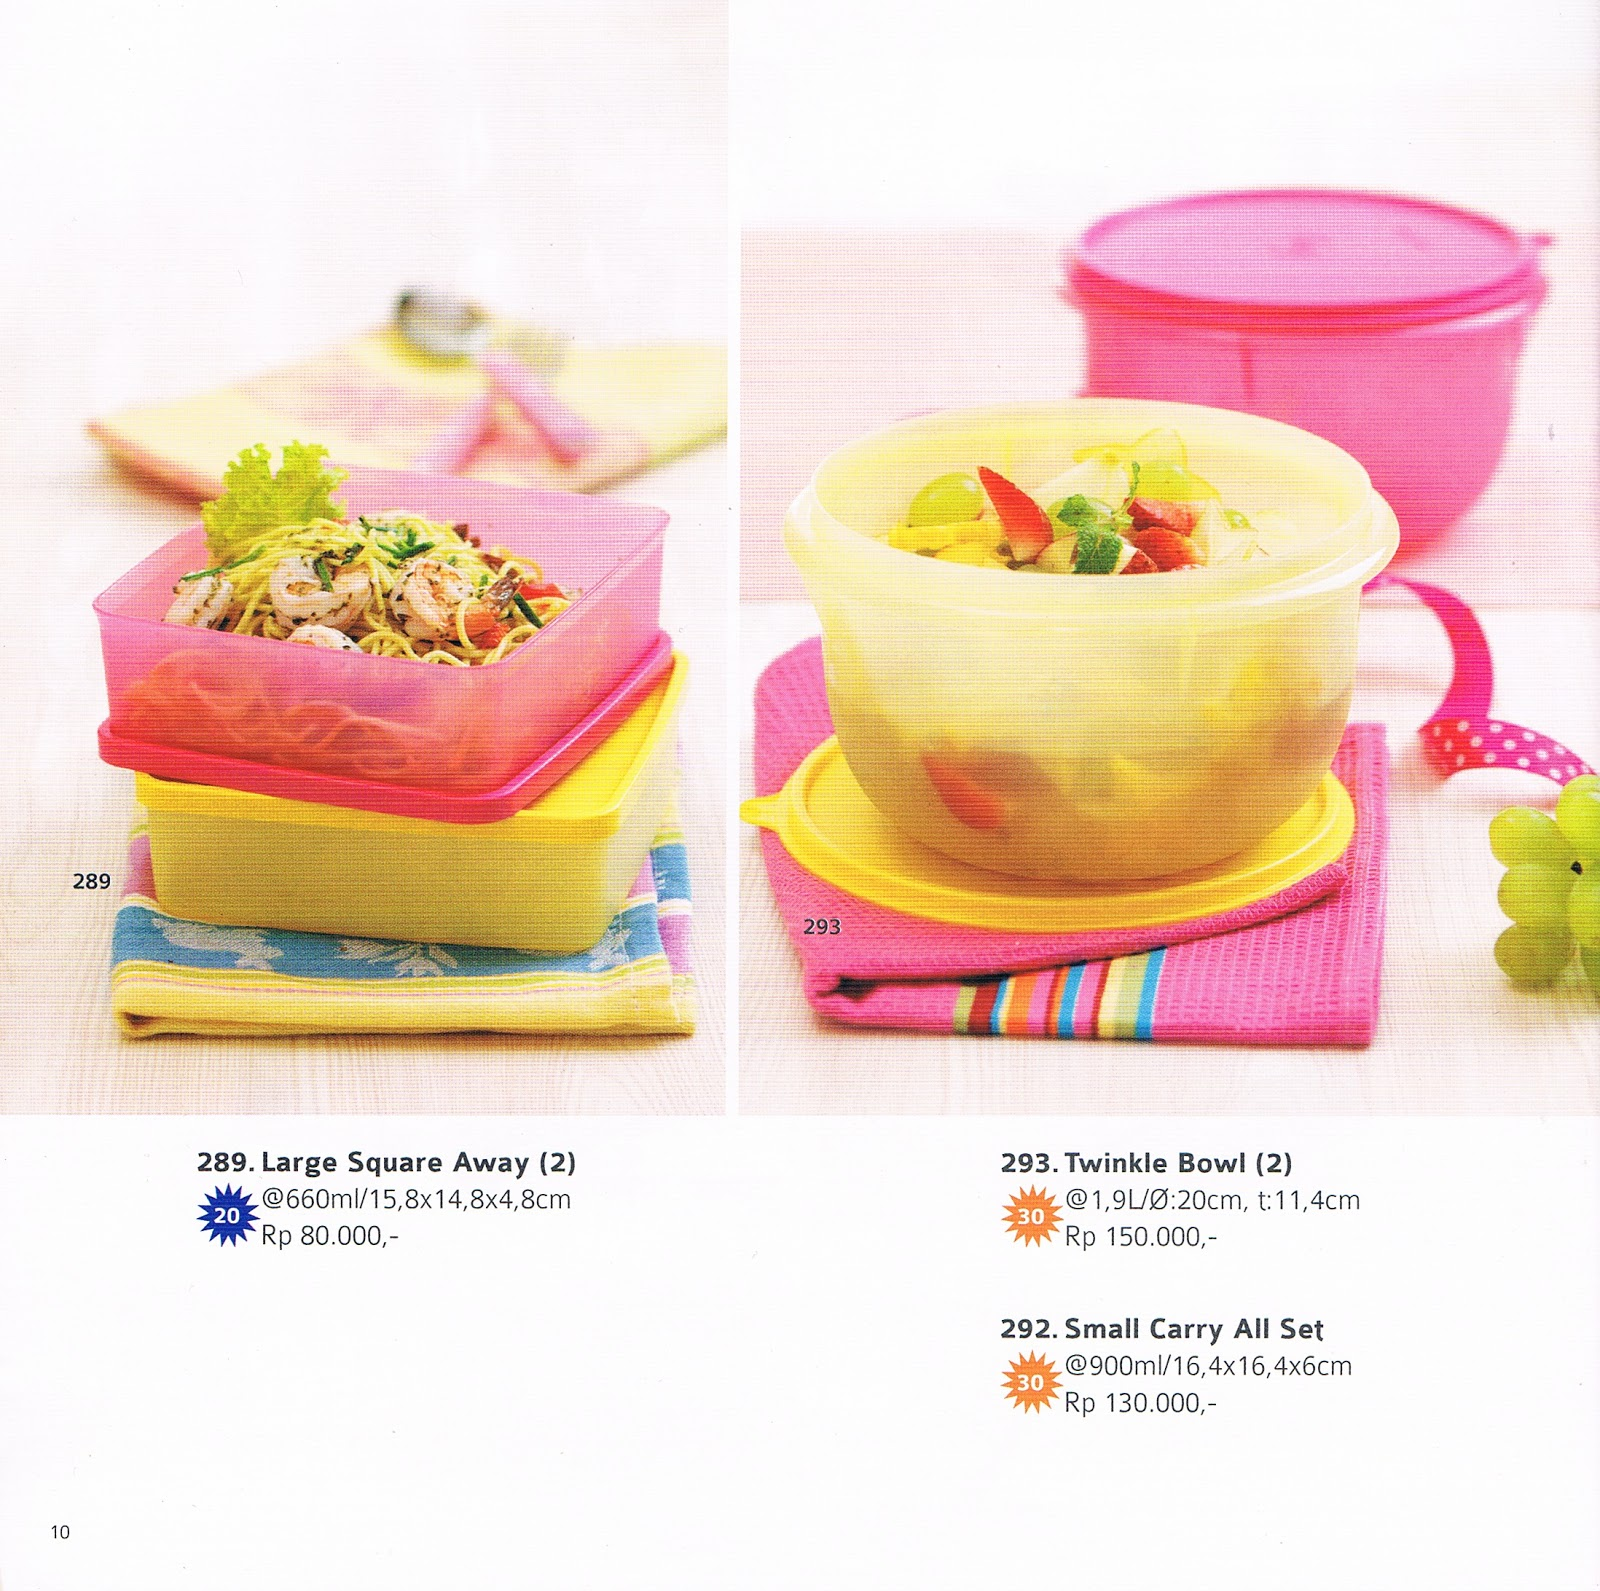 katalog tupperware reguler november 2013